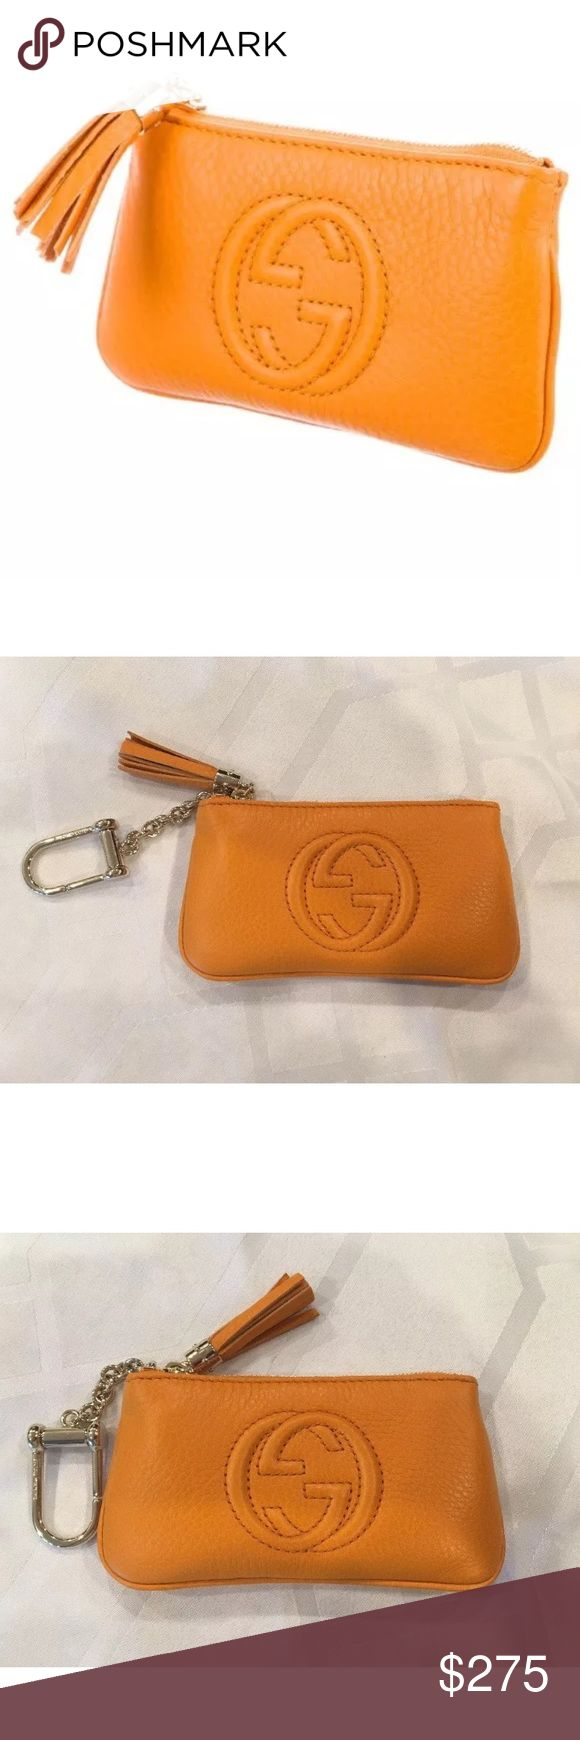 Gucci orange soho keychain pouch GUCCI SOHO KEY POUCH Orange leather Gucci Soho key pouch with gold-tone hardware, GG accent at front face, key ring at side, brown interior. Zip closure at top featuring leather tassel embellishment. Includes Gucci box! This is a great item when you don't want to carry anything with you! Your Credit Card, ID and money all fit inside! Gucci Accessories Key & Card Holders